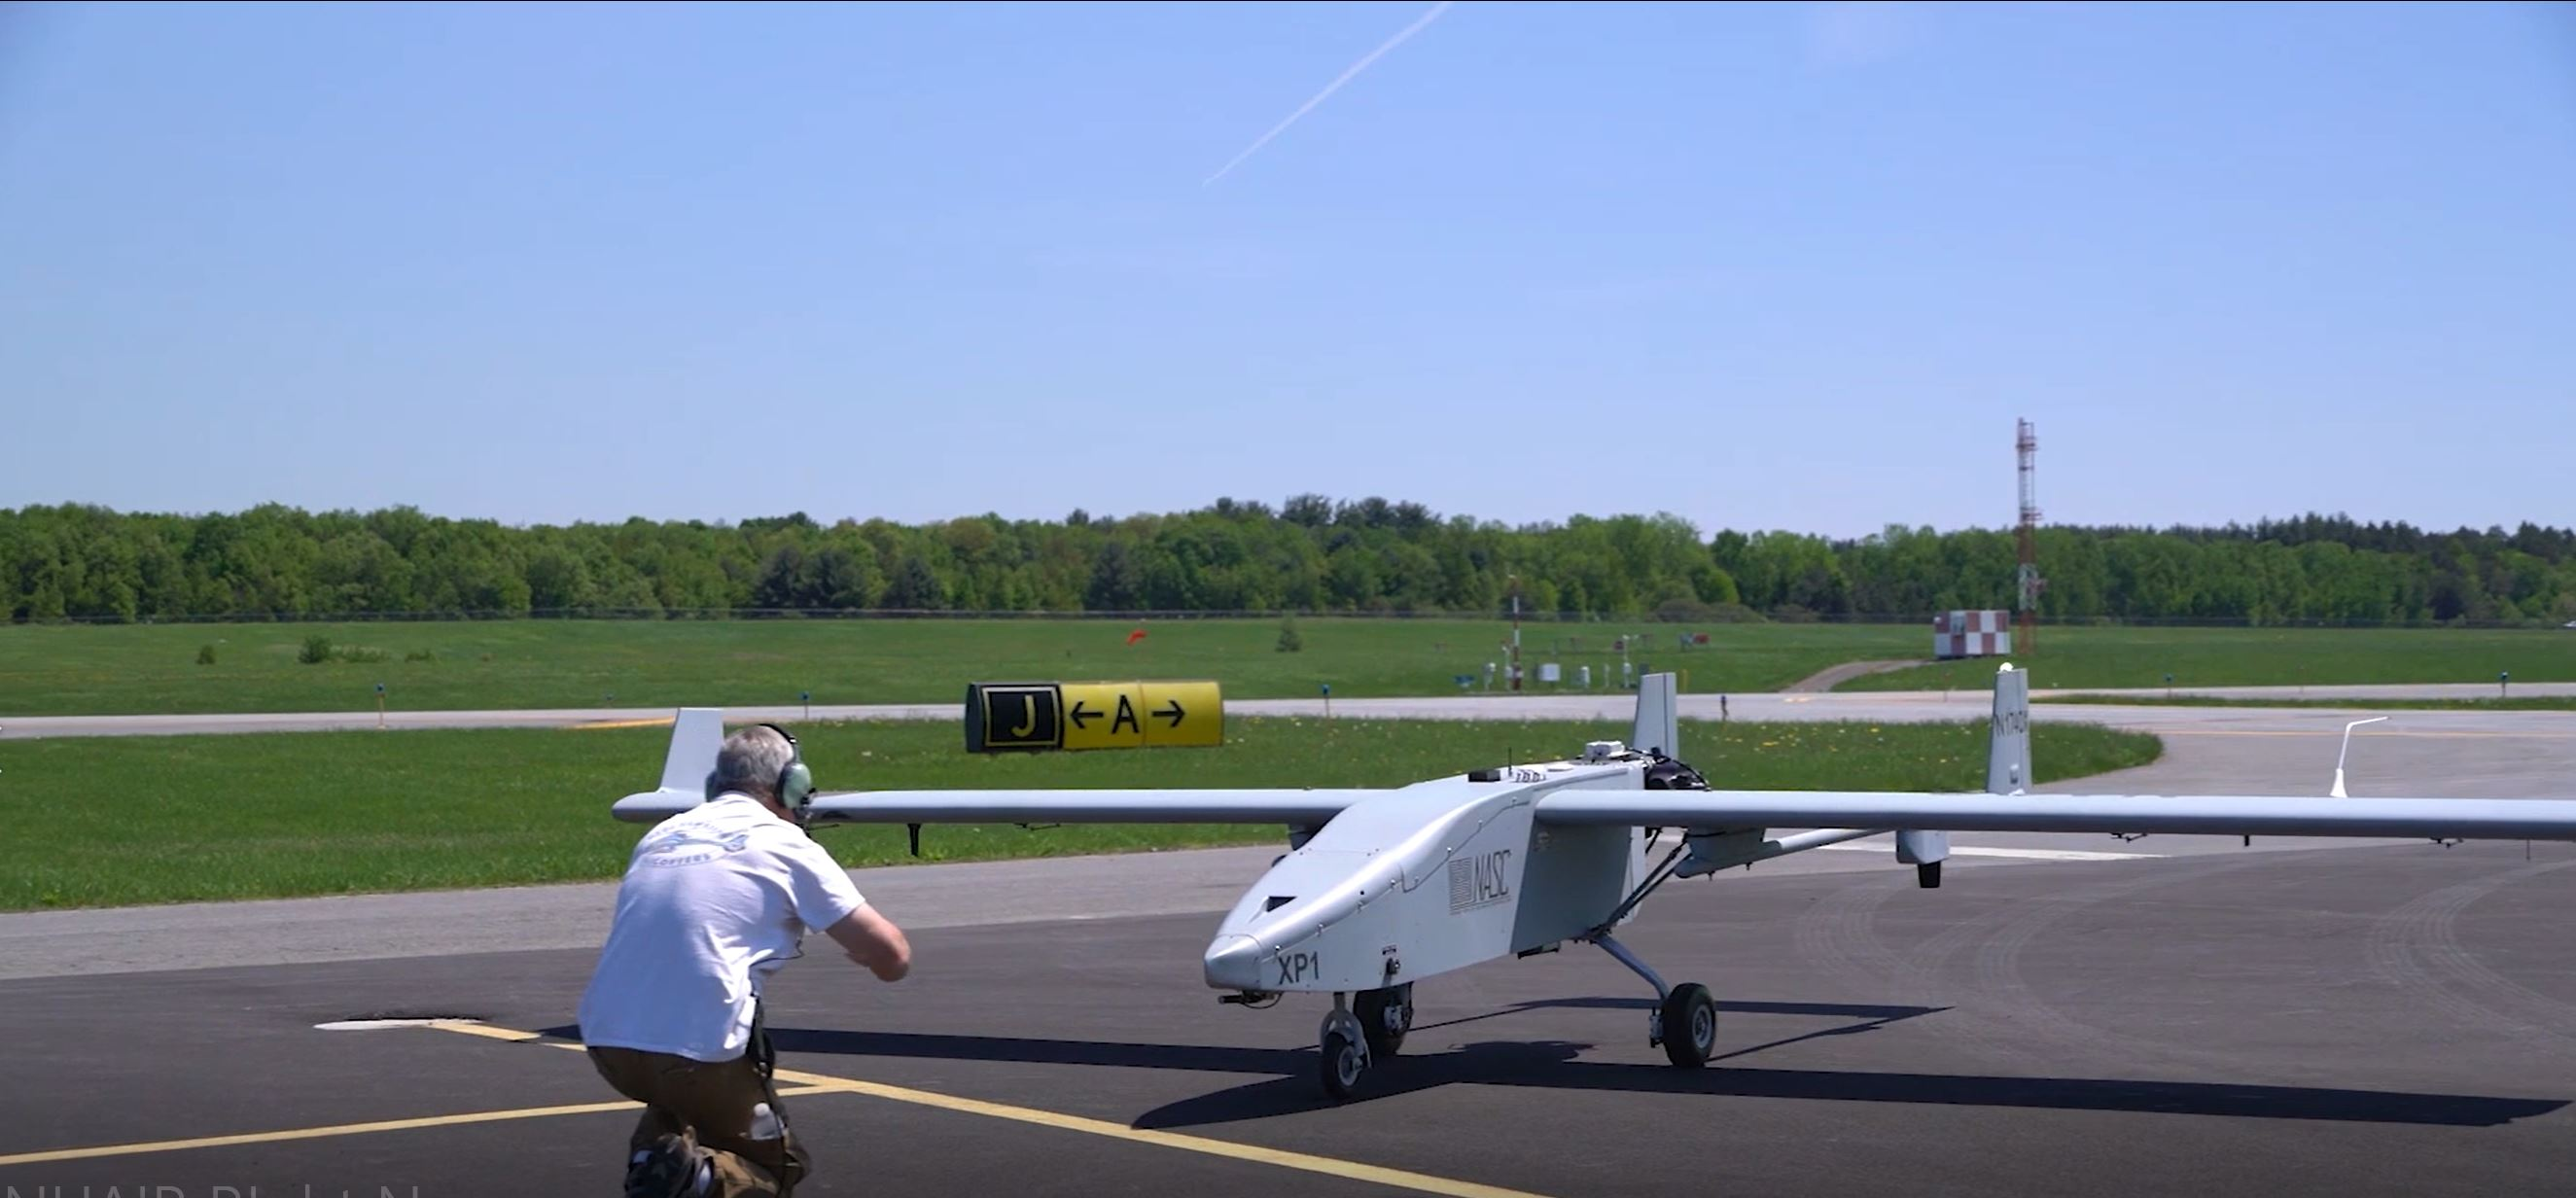 Tiger Shark Drone at Griffiss